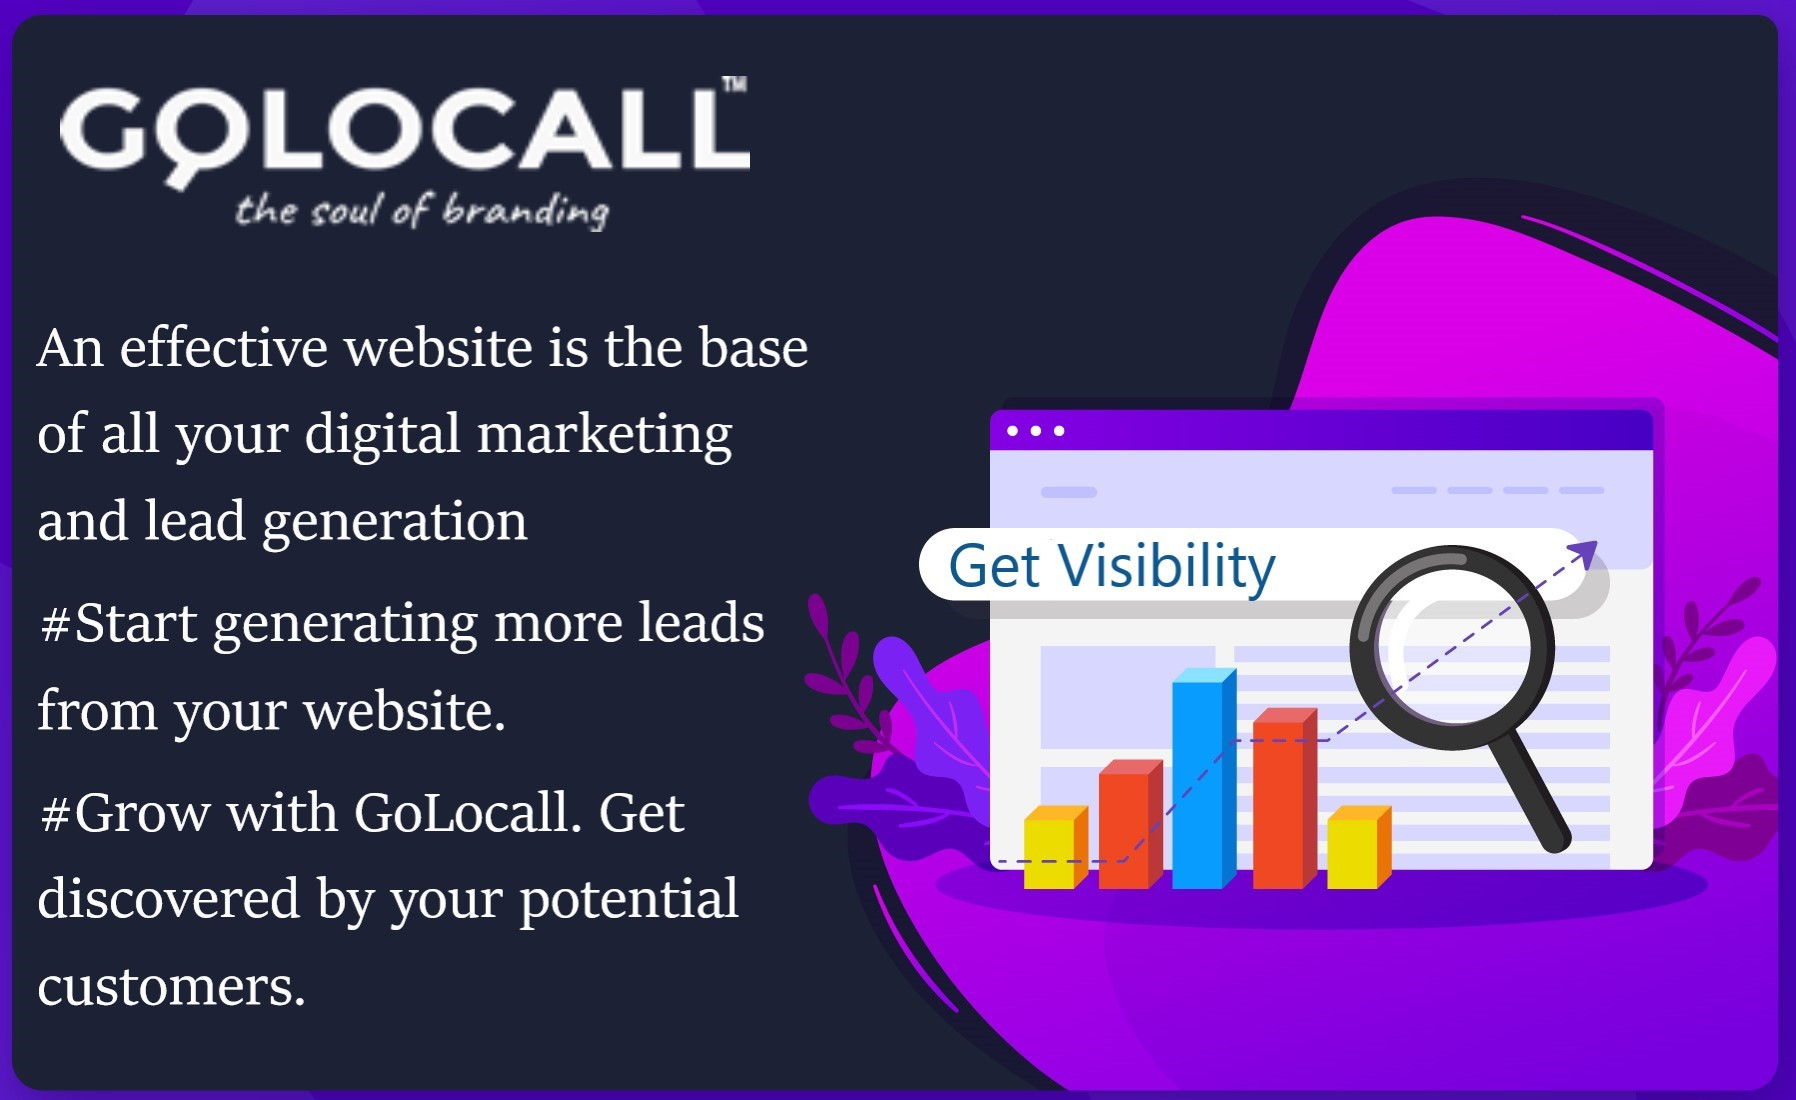 GoLocall Web Services Private Limited, Google Promotion In Delhi, Digital Marketing Companies In Delhi, SEO Experts In Delhi, Auto SEO In Delhi, Best SEO Company In Delhi, Best Business Promotion Company In Delhi, Online Marketing Company